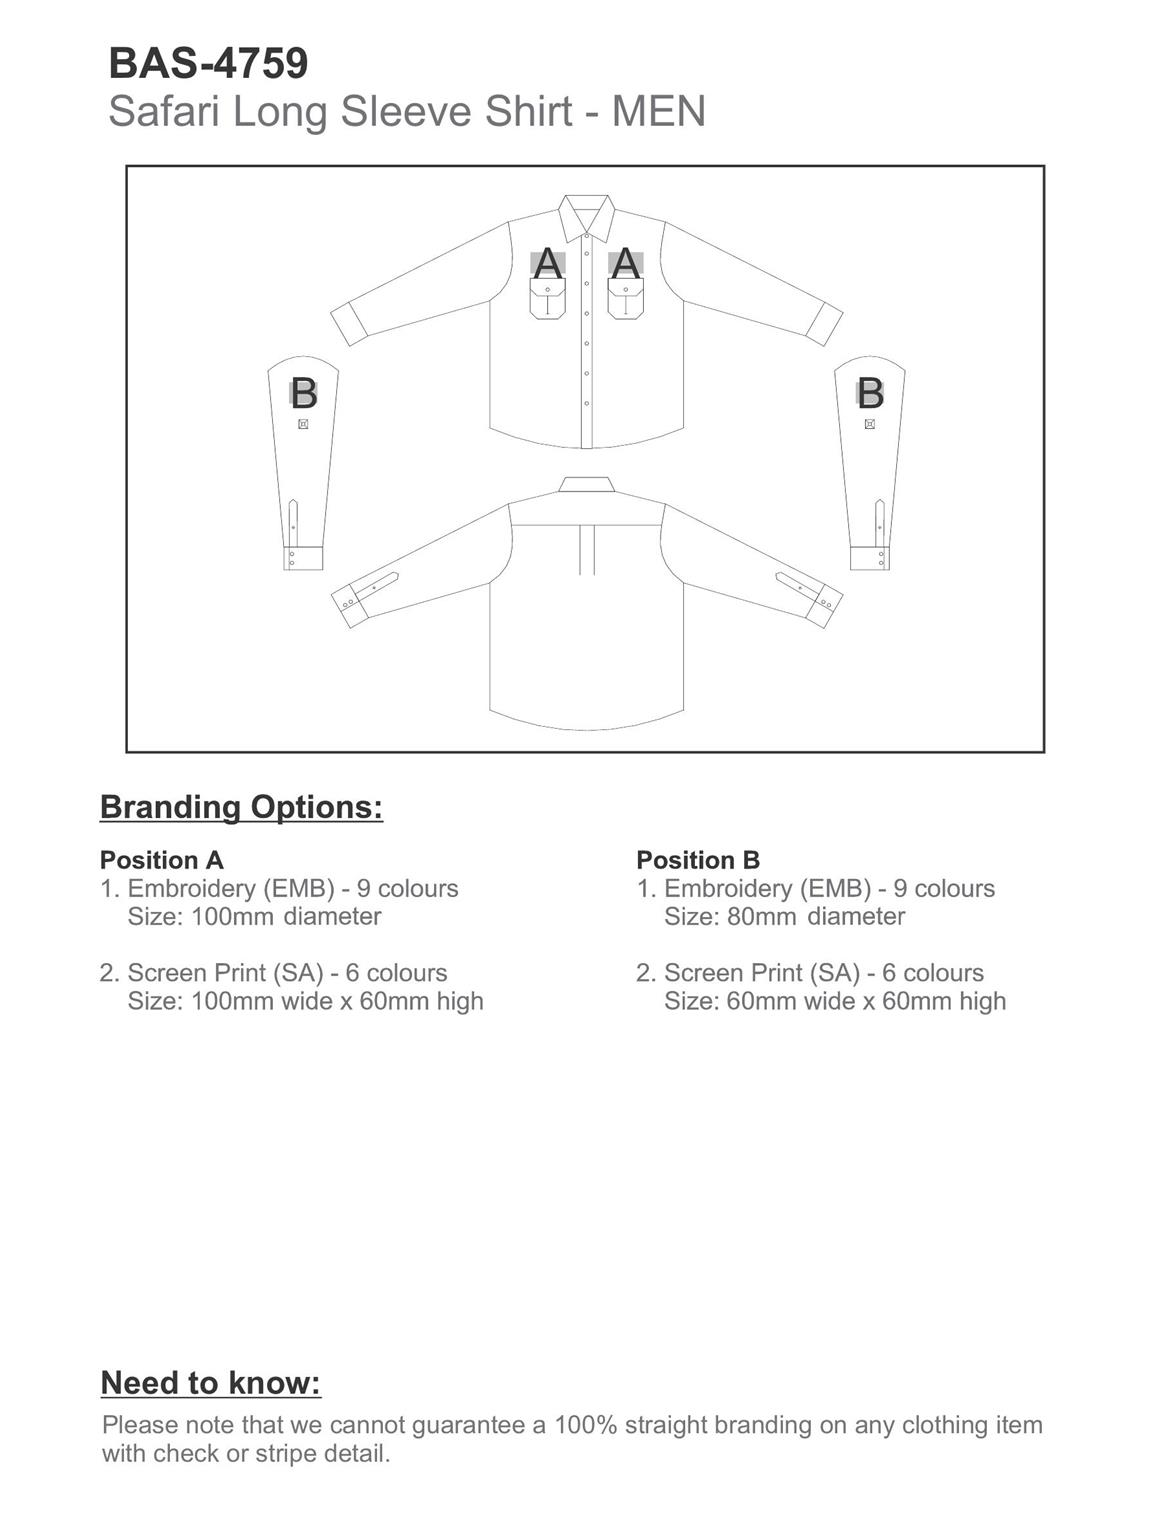 BAS-4759 product layout